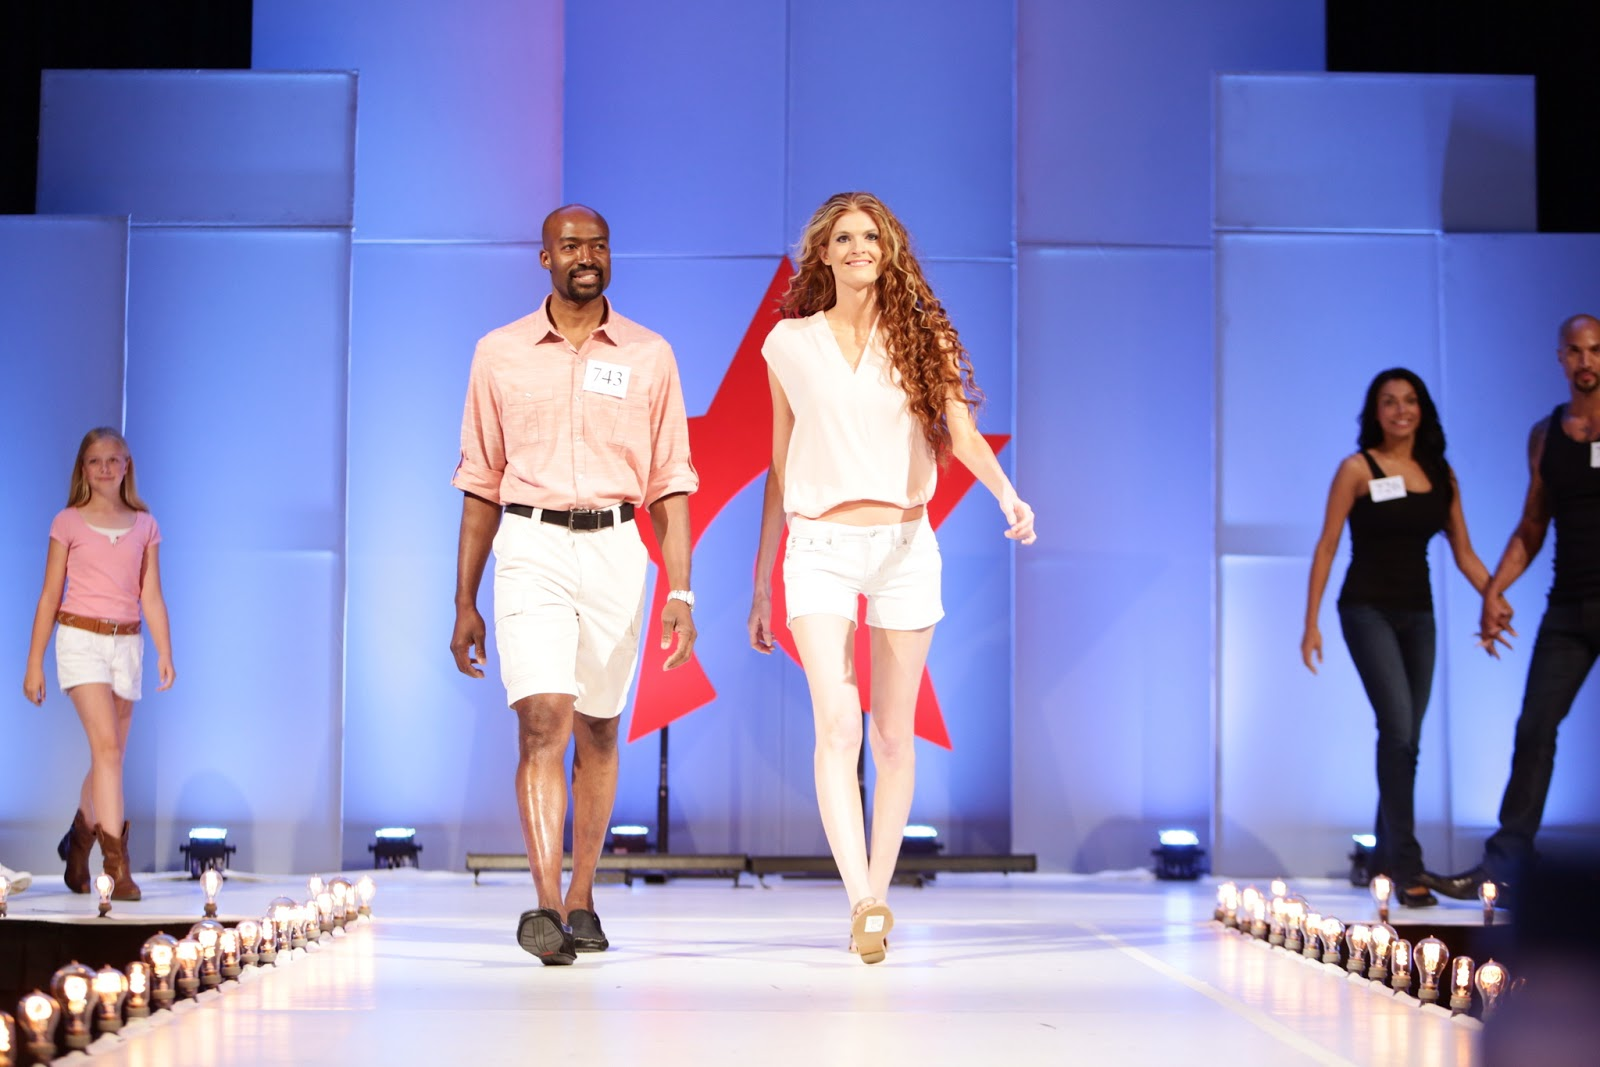 A.M.T.C. Wladimir and Elyssa at AMTC Family runway 2013